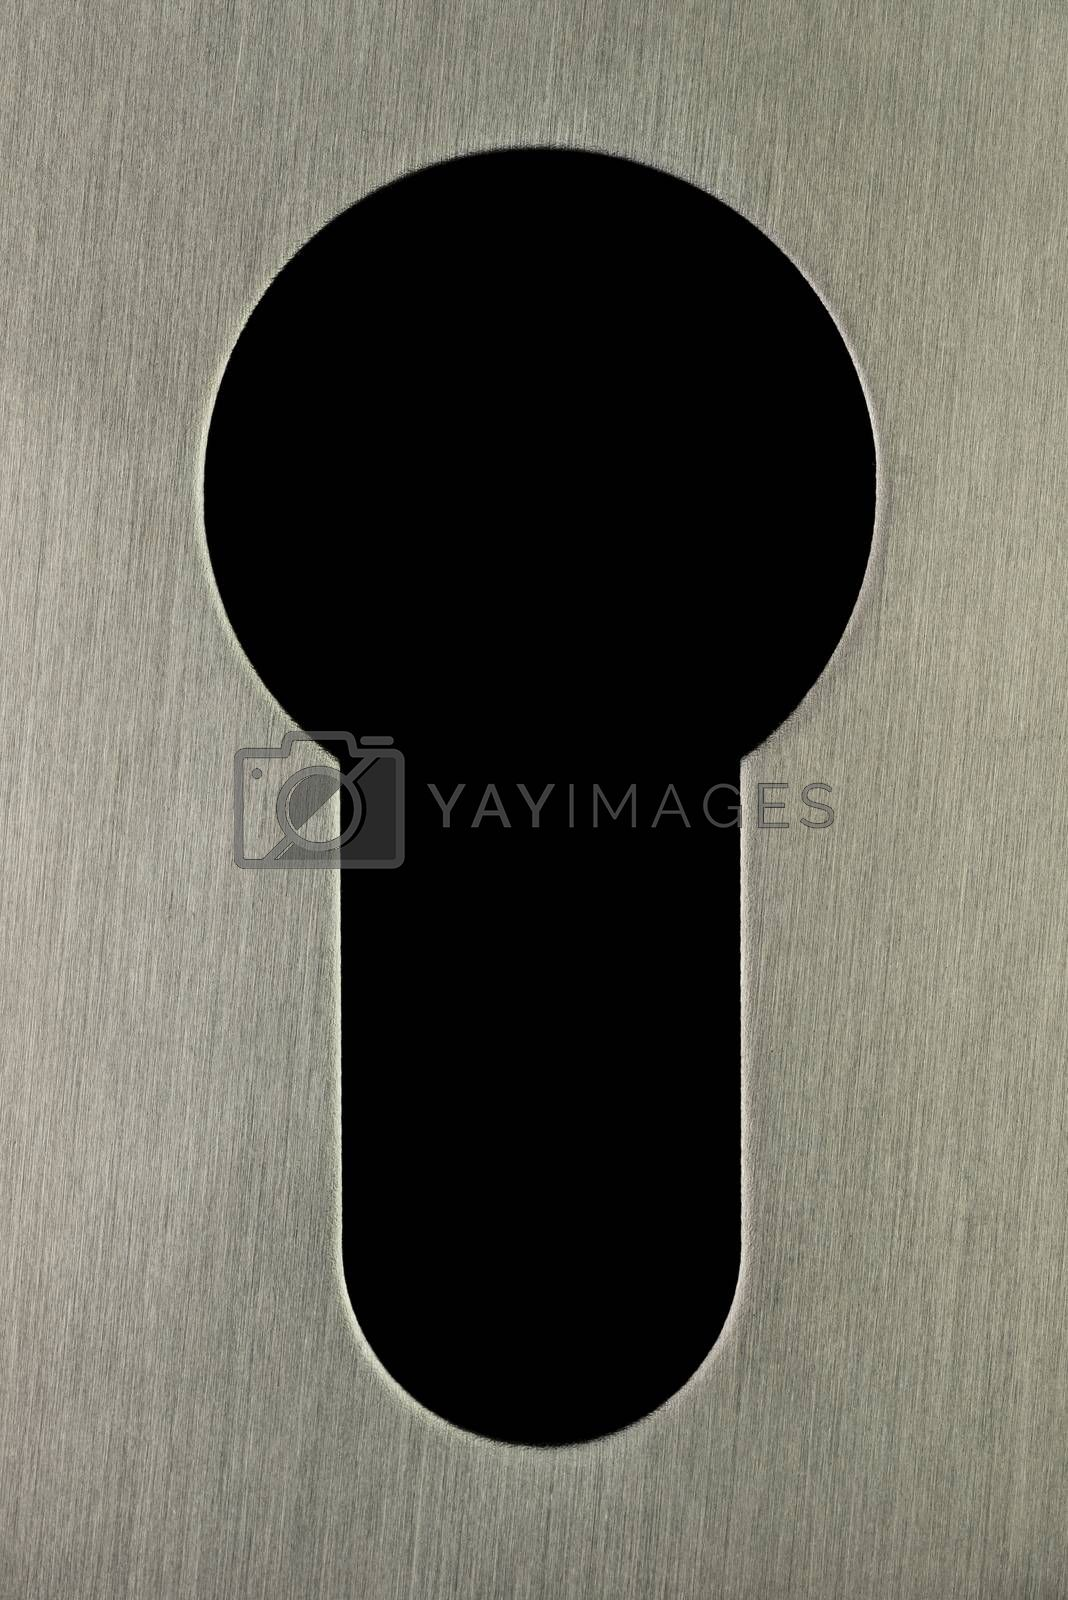 Keyhole features a stainless steel edge looking to a neutral colored background that can be provided with text or otherwise